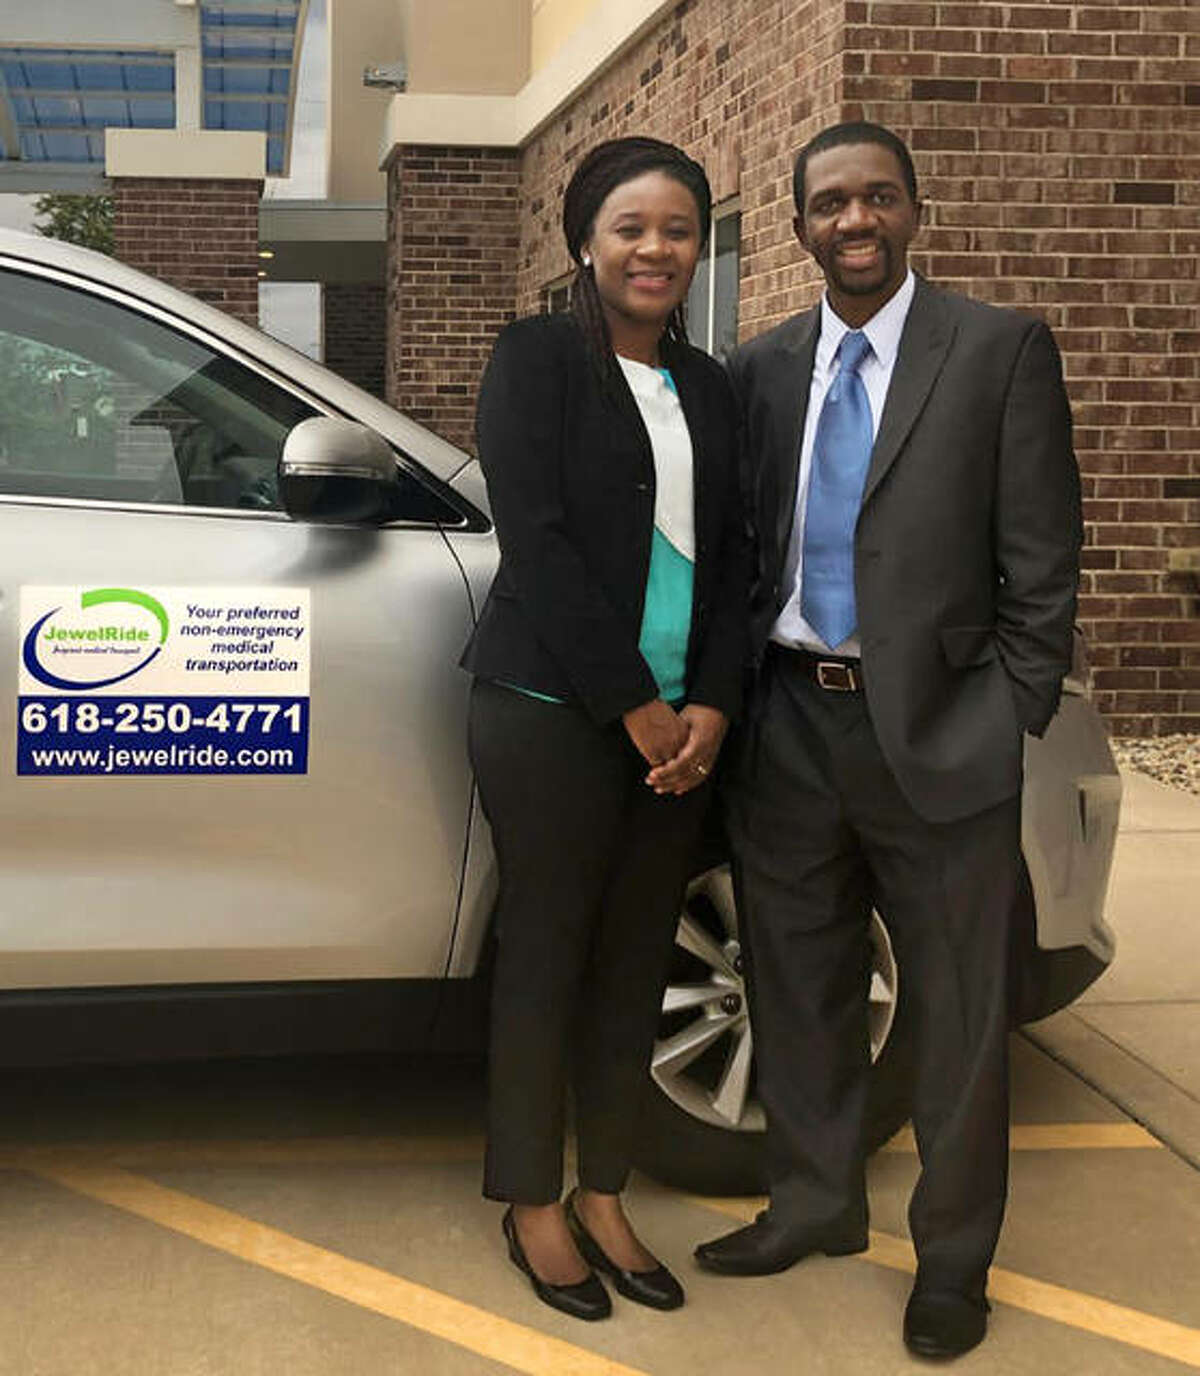 JewelRide owners Rutendo and Tapiwa Mupereki have received a Community Development Block Grant to provide transportation to COVID-19 vaccinations.